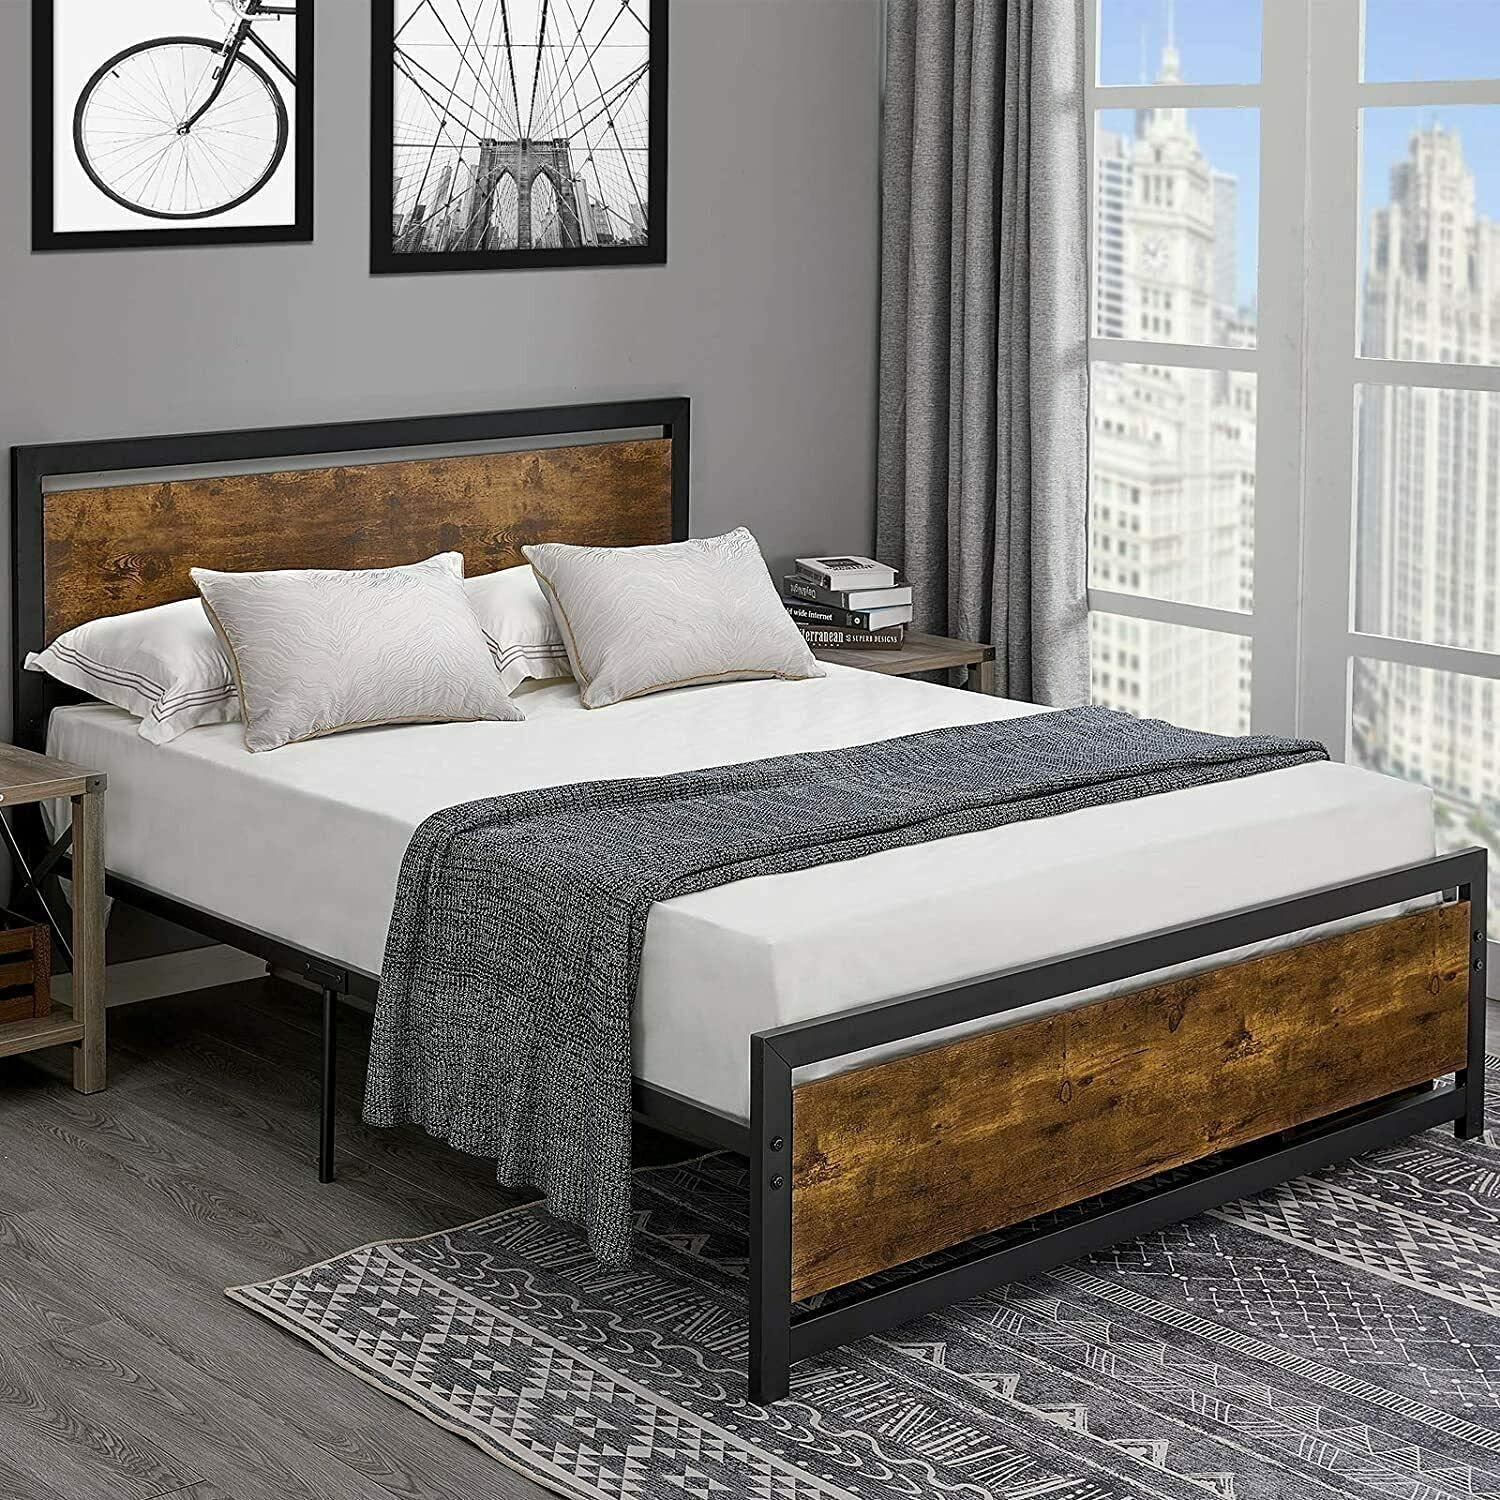 GXK Bed Max 70% OFF Frame Full Size with Metal Platform Wooden Factory outlet Hea